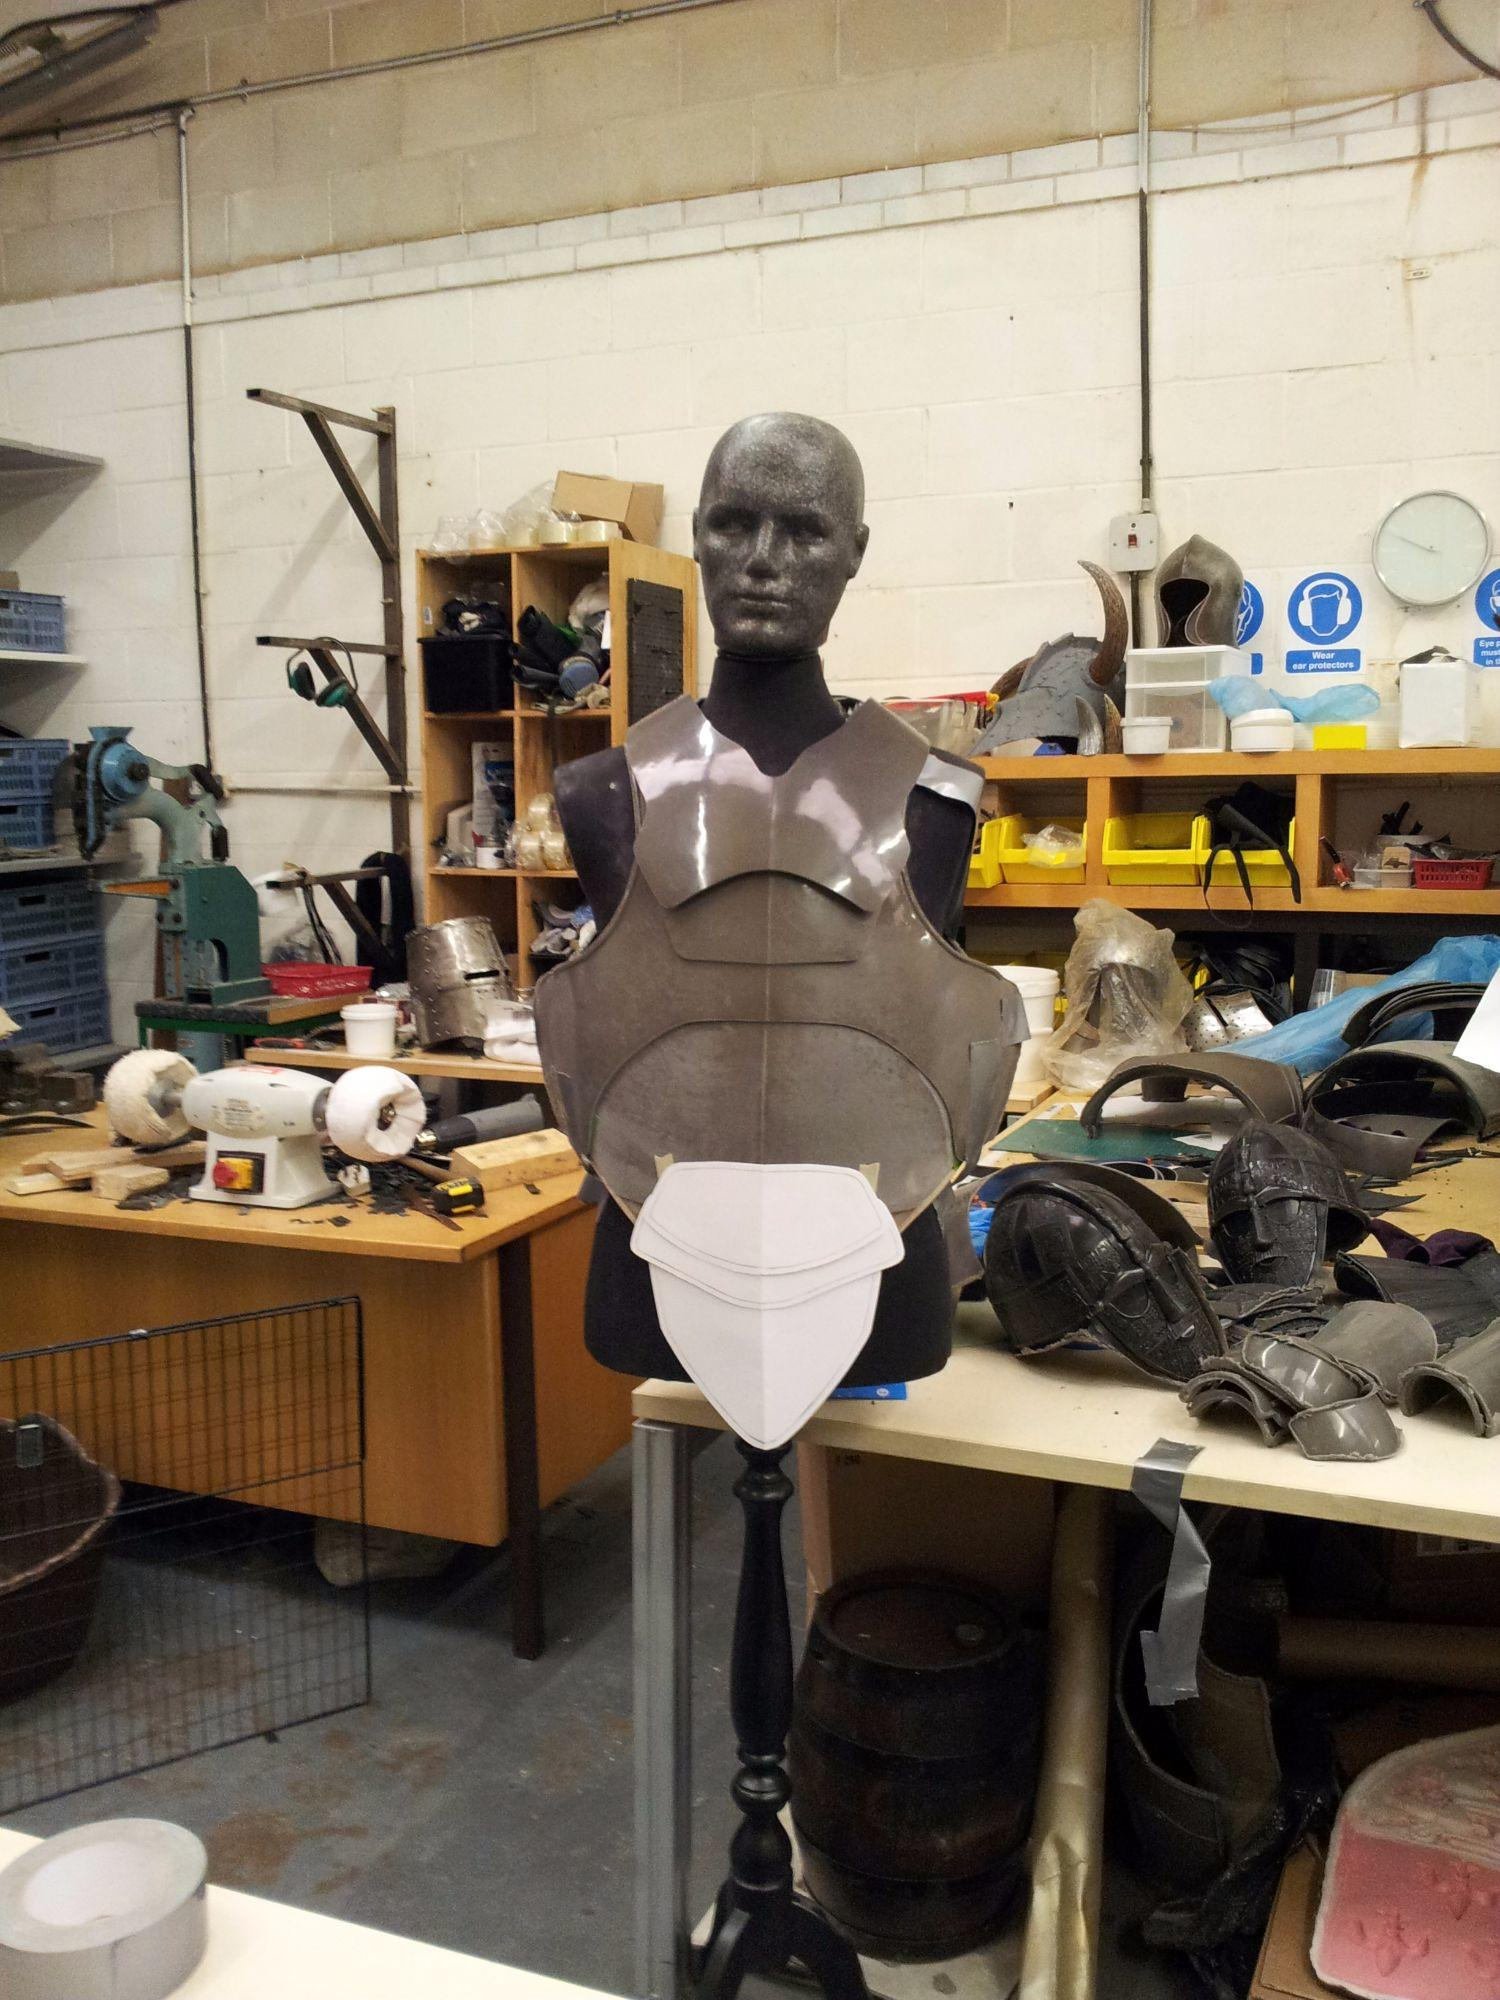 Test fitting on a dummy